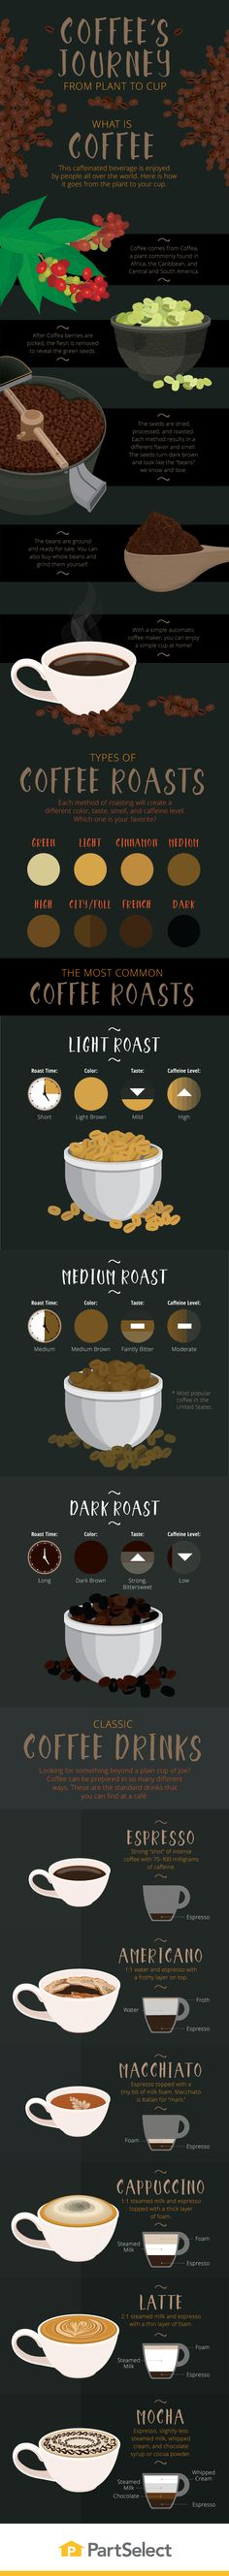 The Process Of Making Coffee - Infographic